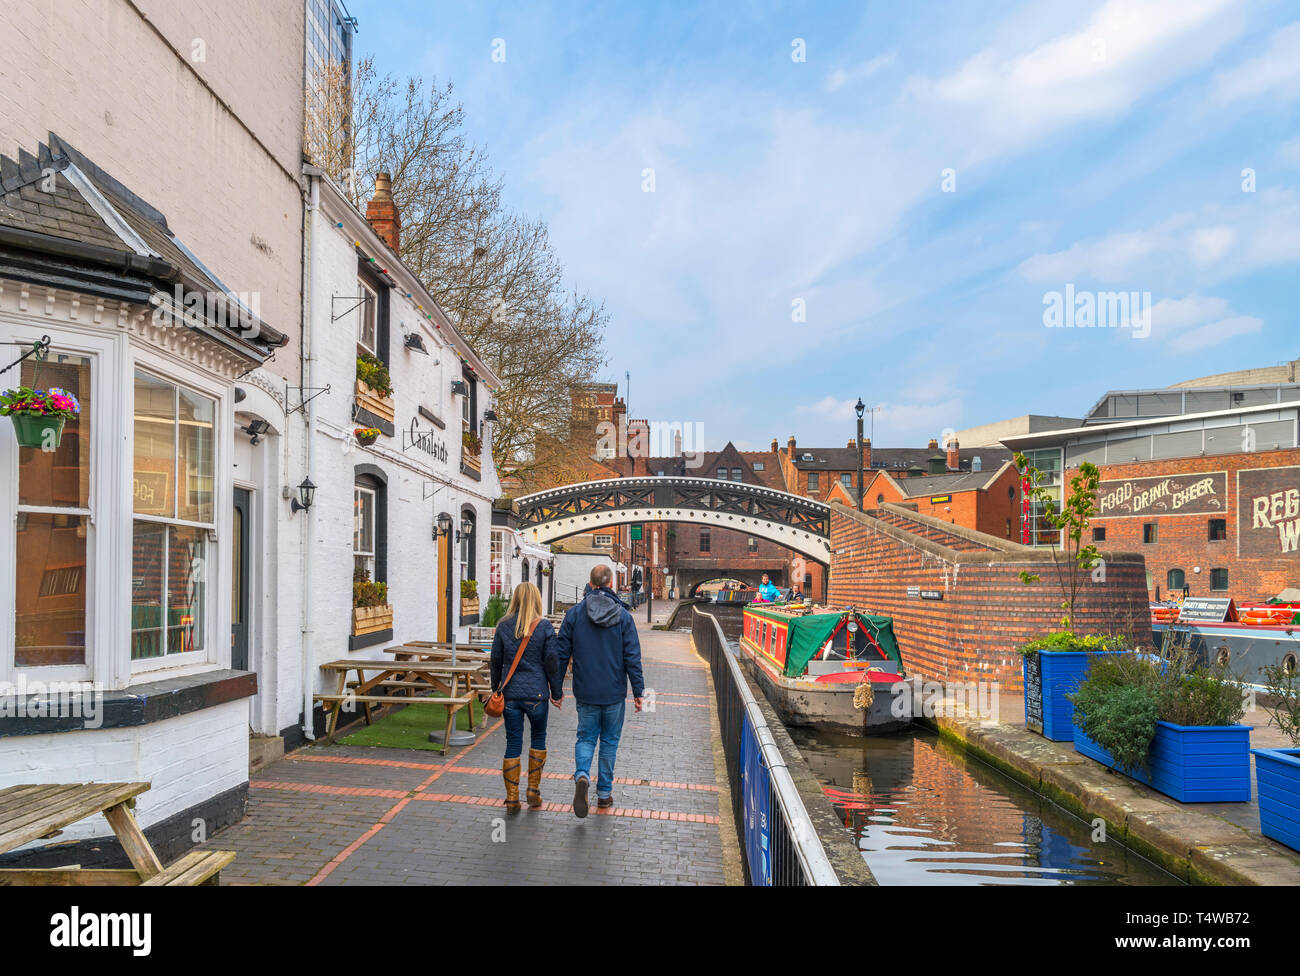 Narrowboat by the Canalside Bar on the canal at Gas Street Basin, Birmingham, West Midlands, England, UK - Stock Image